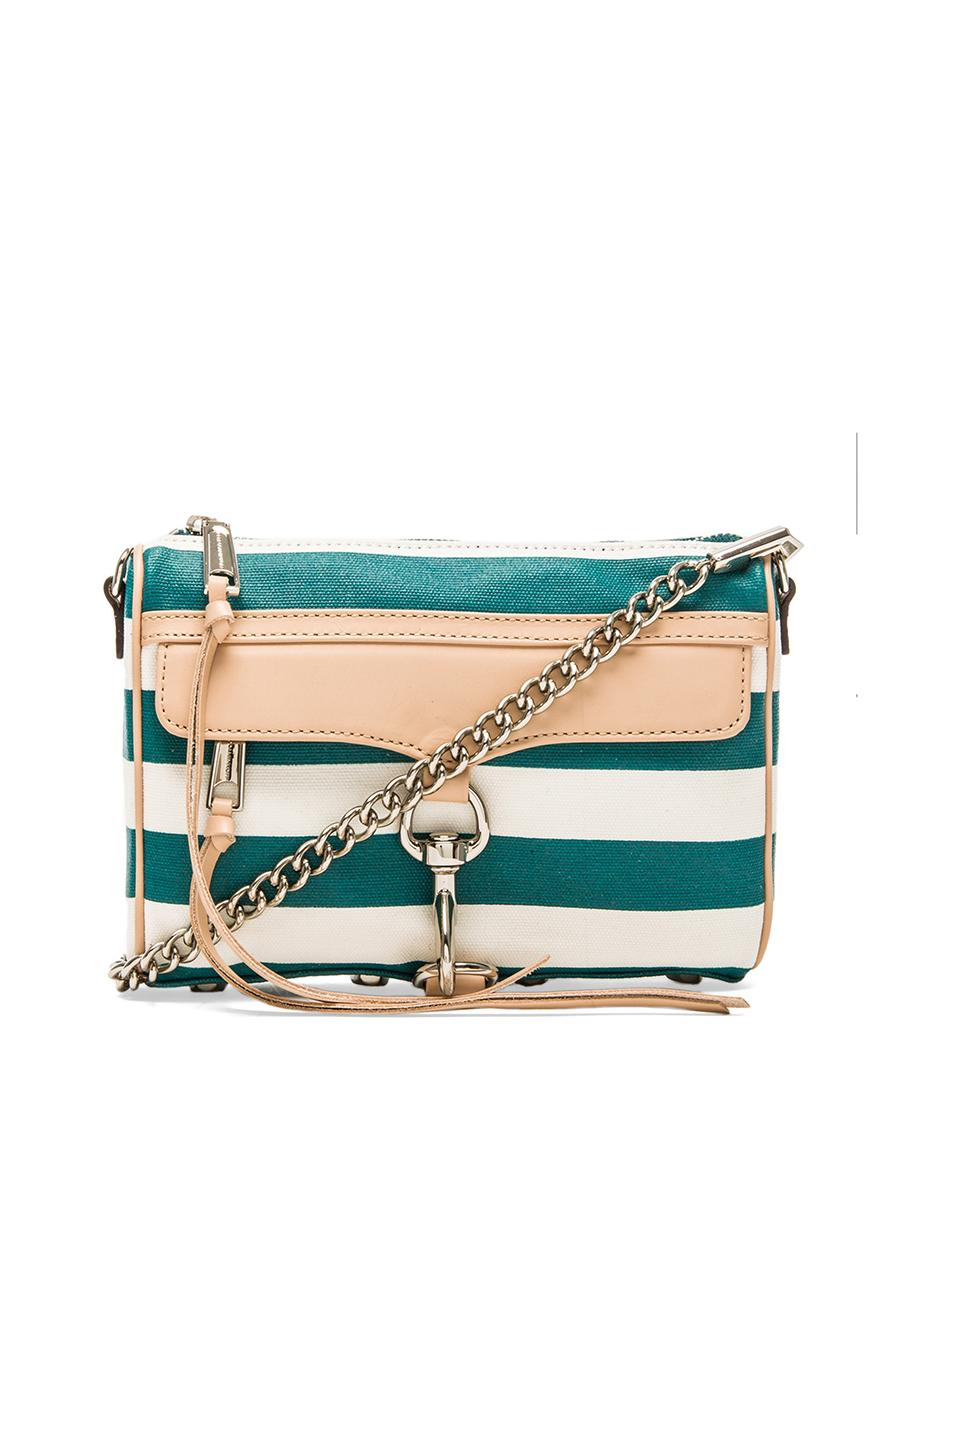 Rebecca Minkoff Mini MAC in Teal Stripe